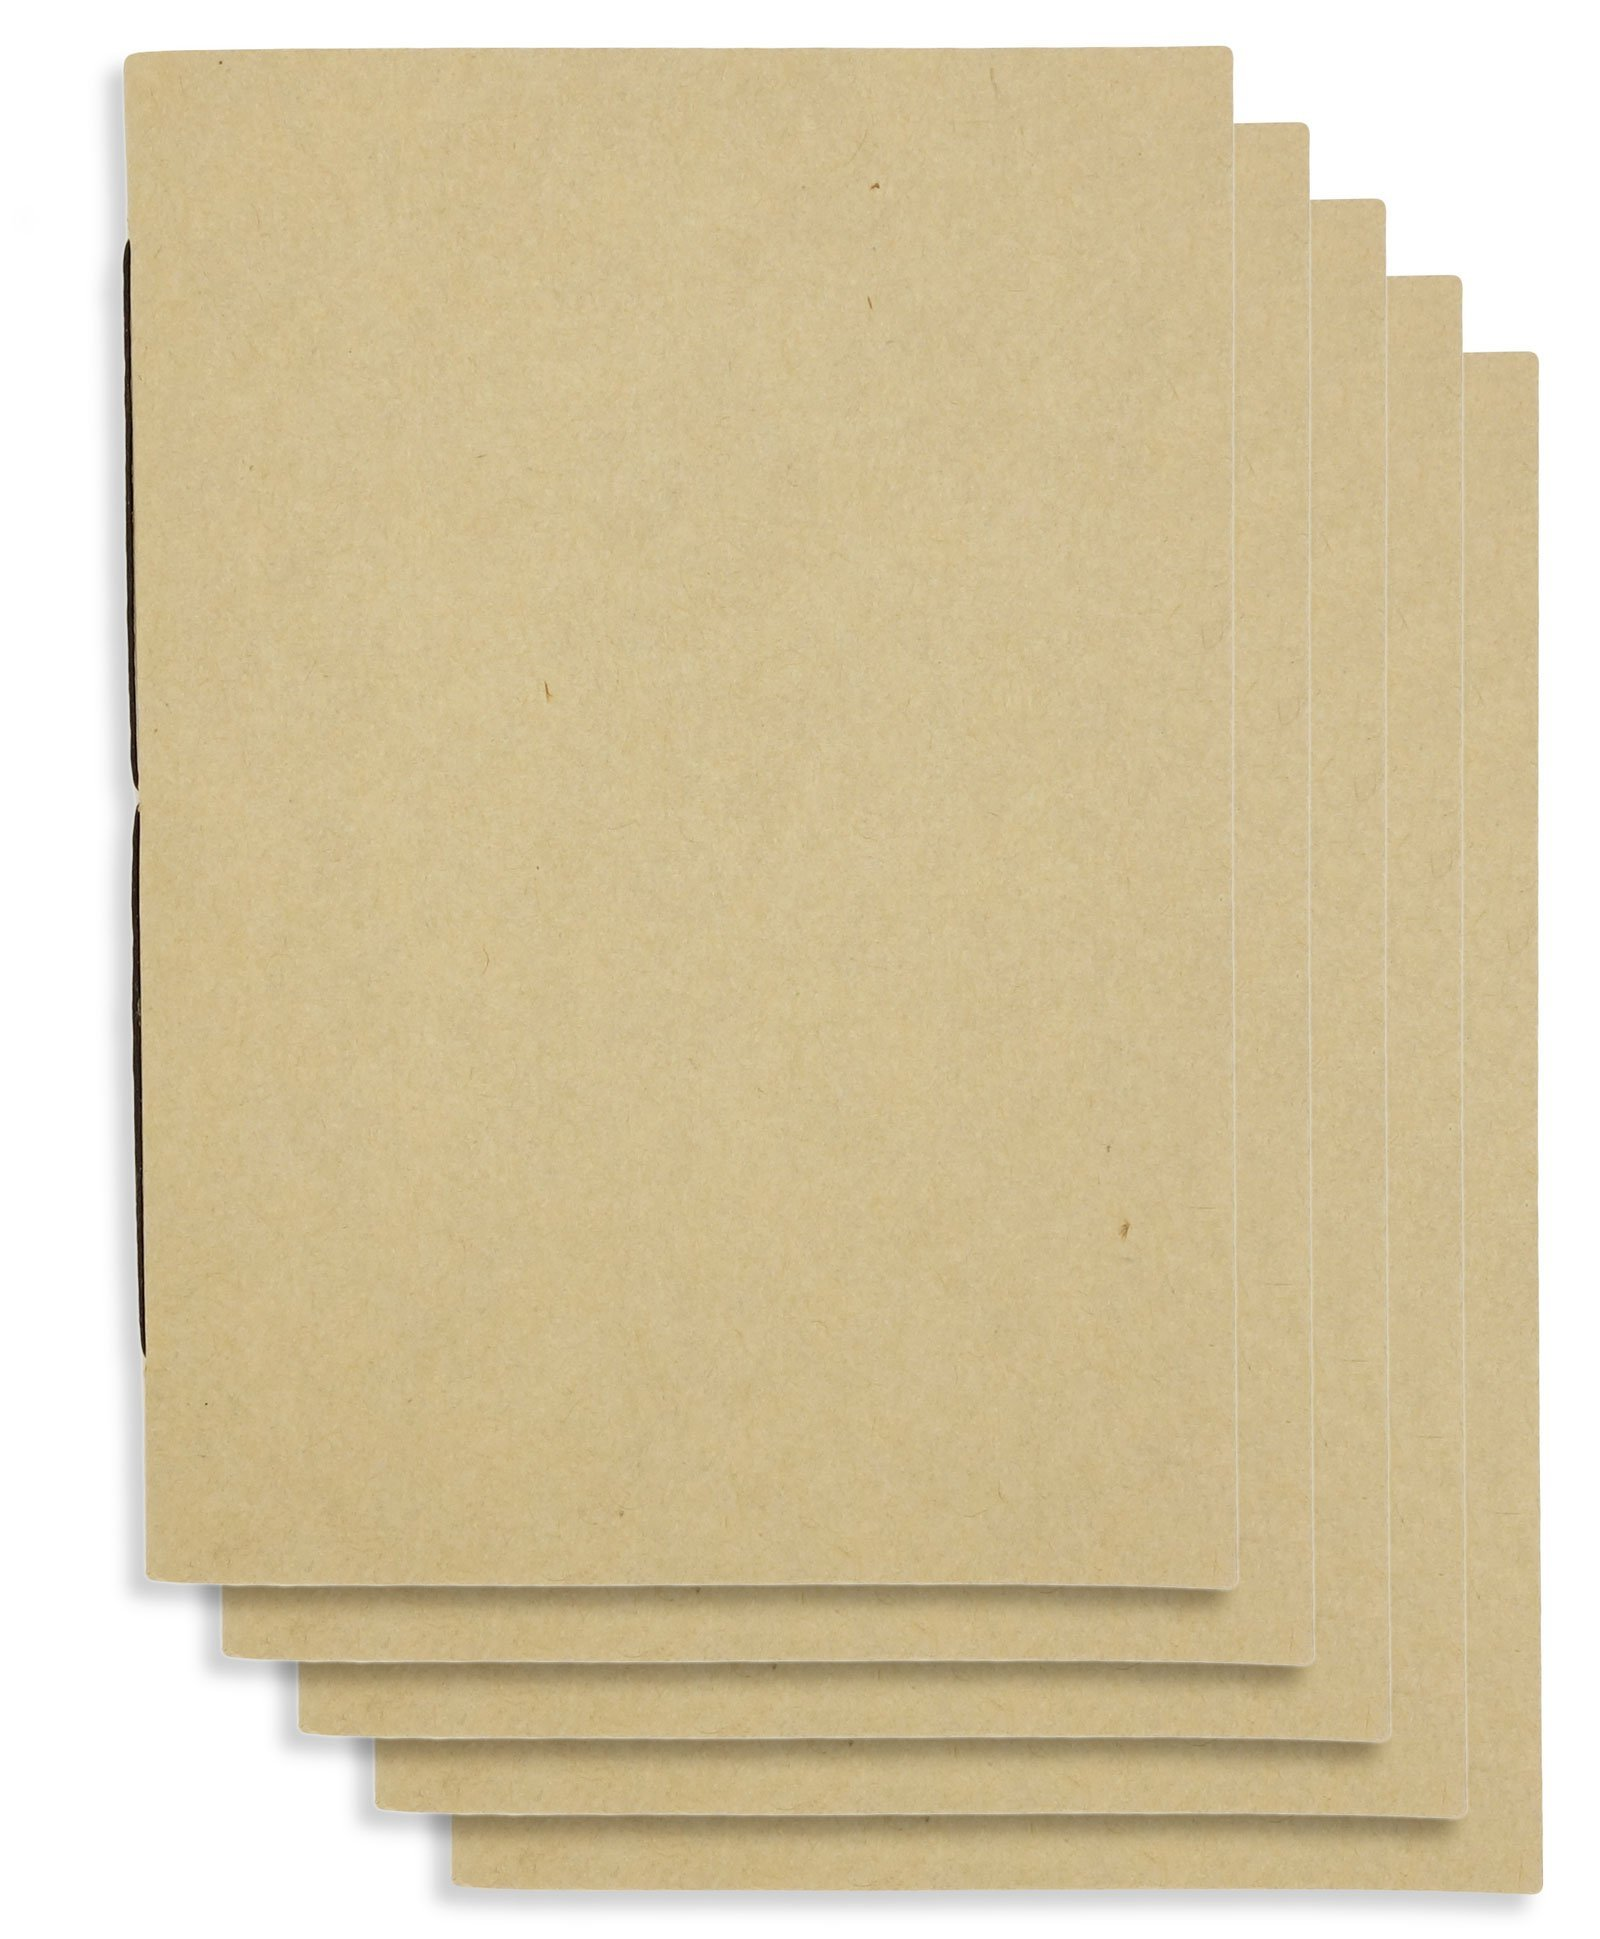 (Set of 5) A6 Handmade 4 x 5.75 inches Notebook/Plain Blank Cover/60 Unlined Page | Lay Flat Binding | Cream Paper